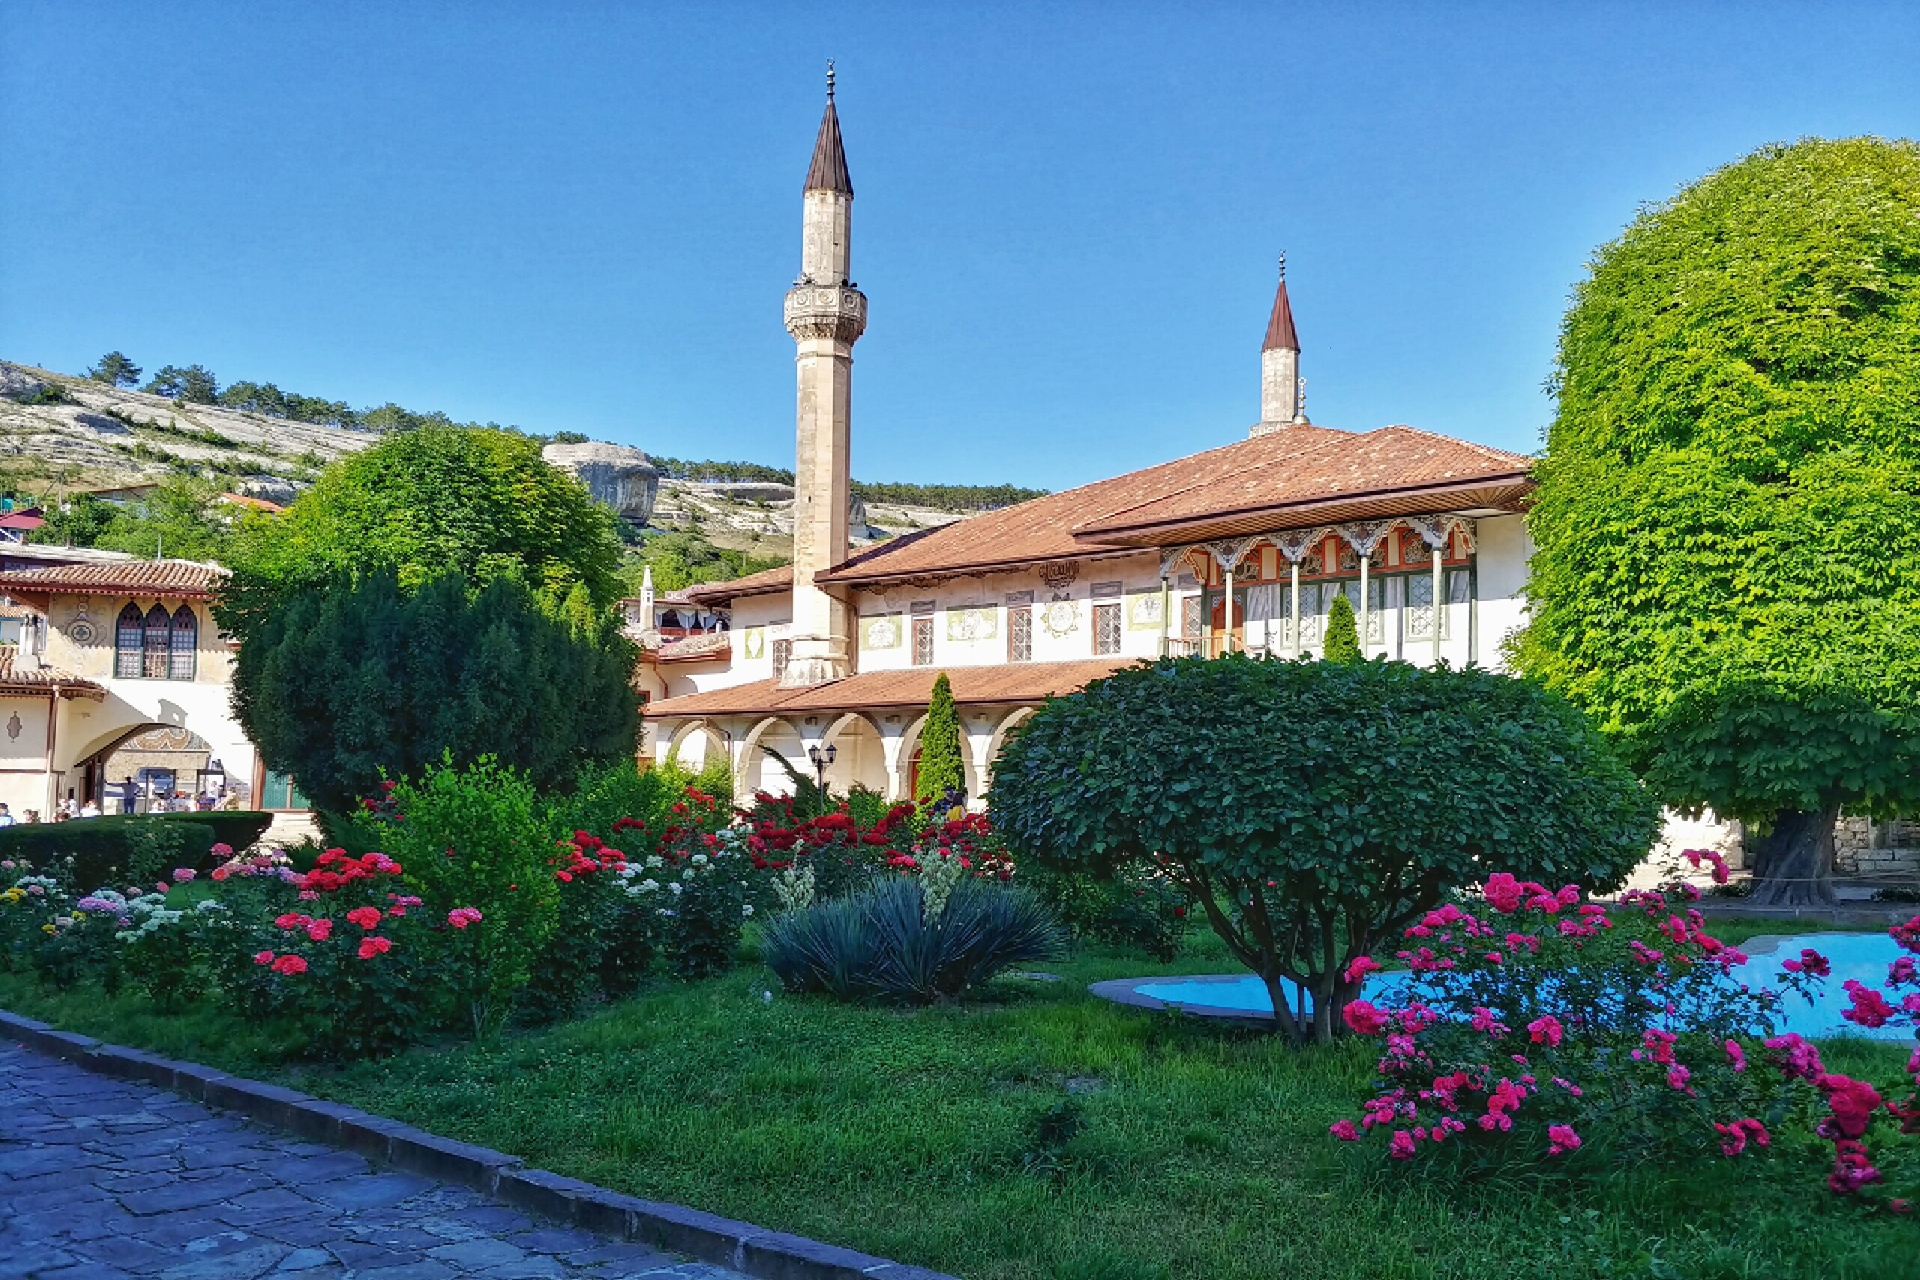 A palace in Arabic style with two minarets in a beautiful area with rocks and a park, the residence of the Crimean Tatar Khans